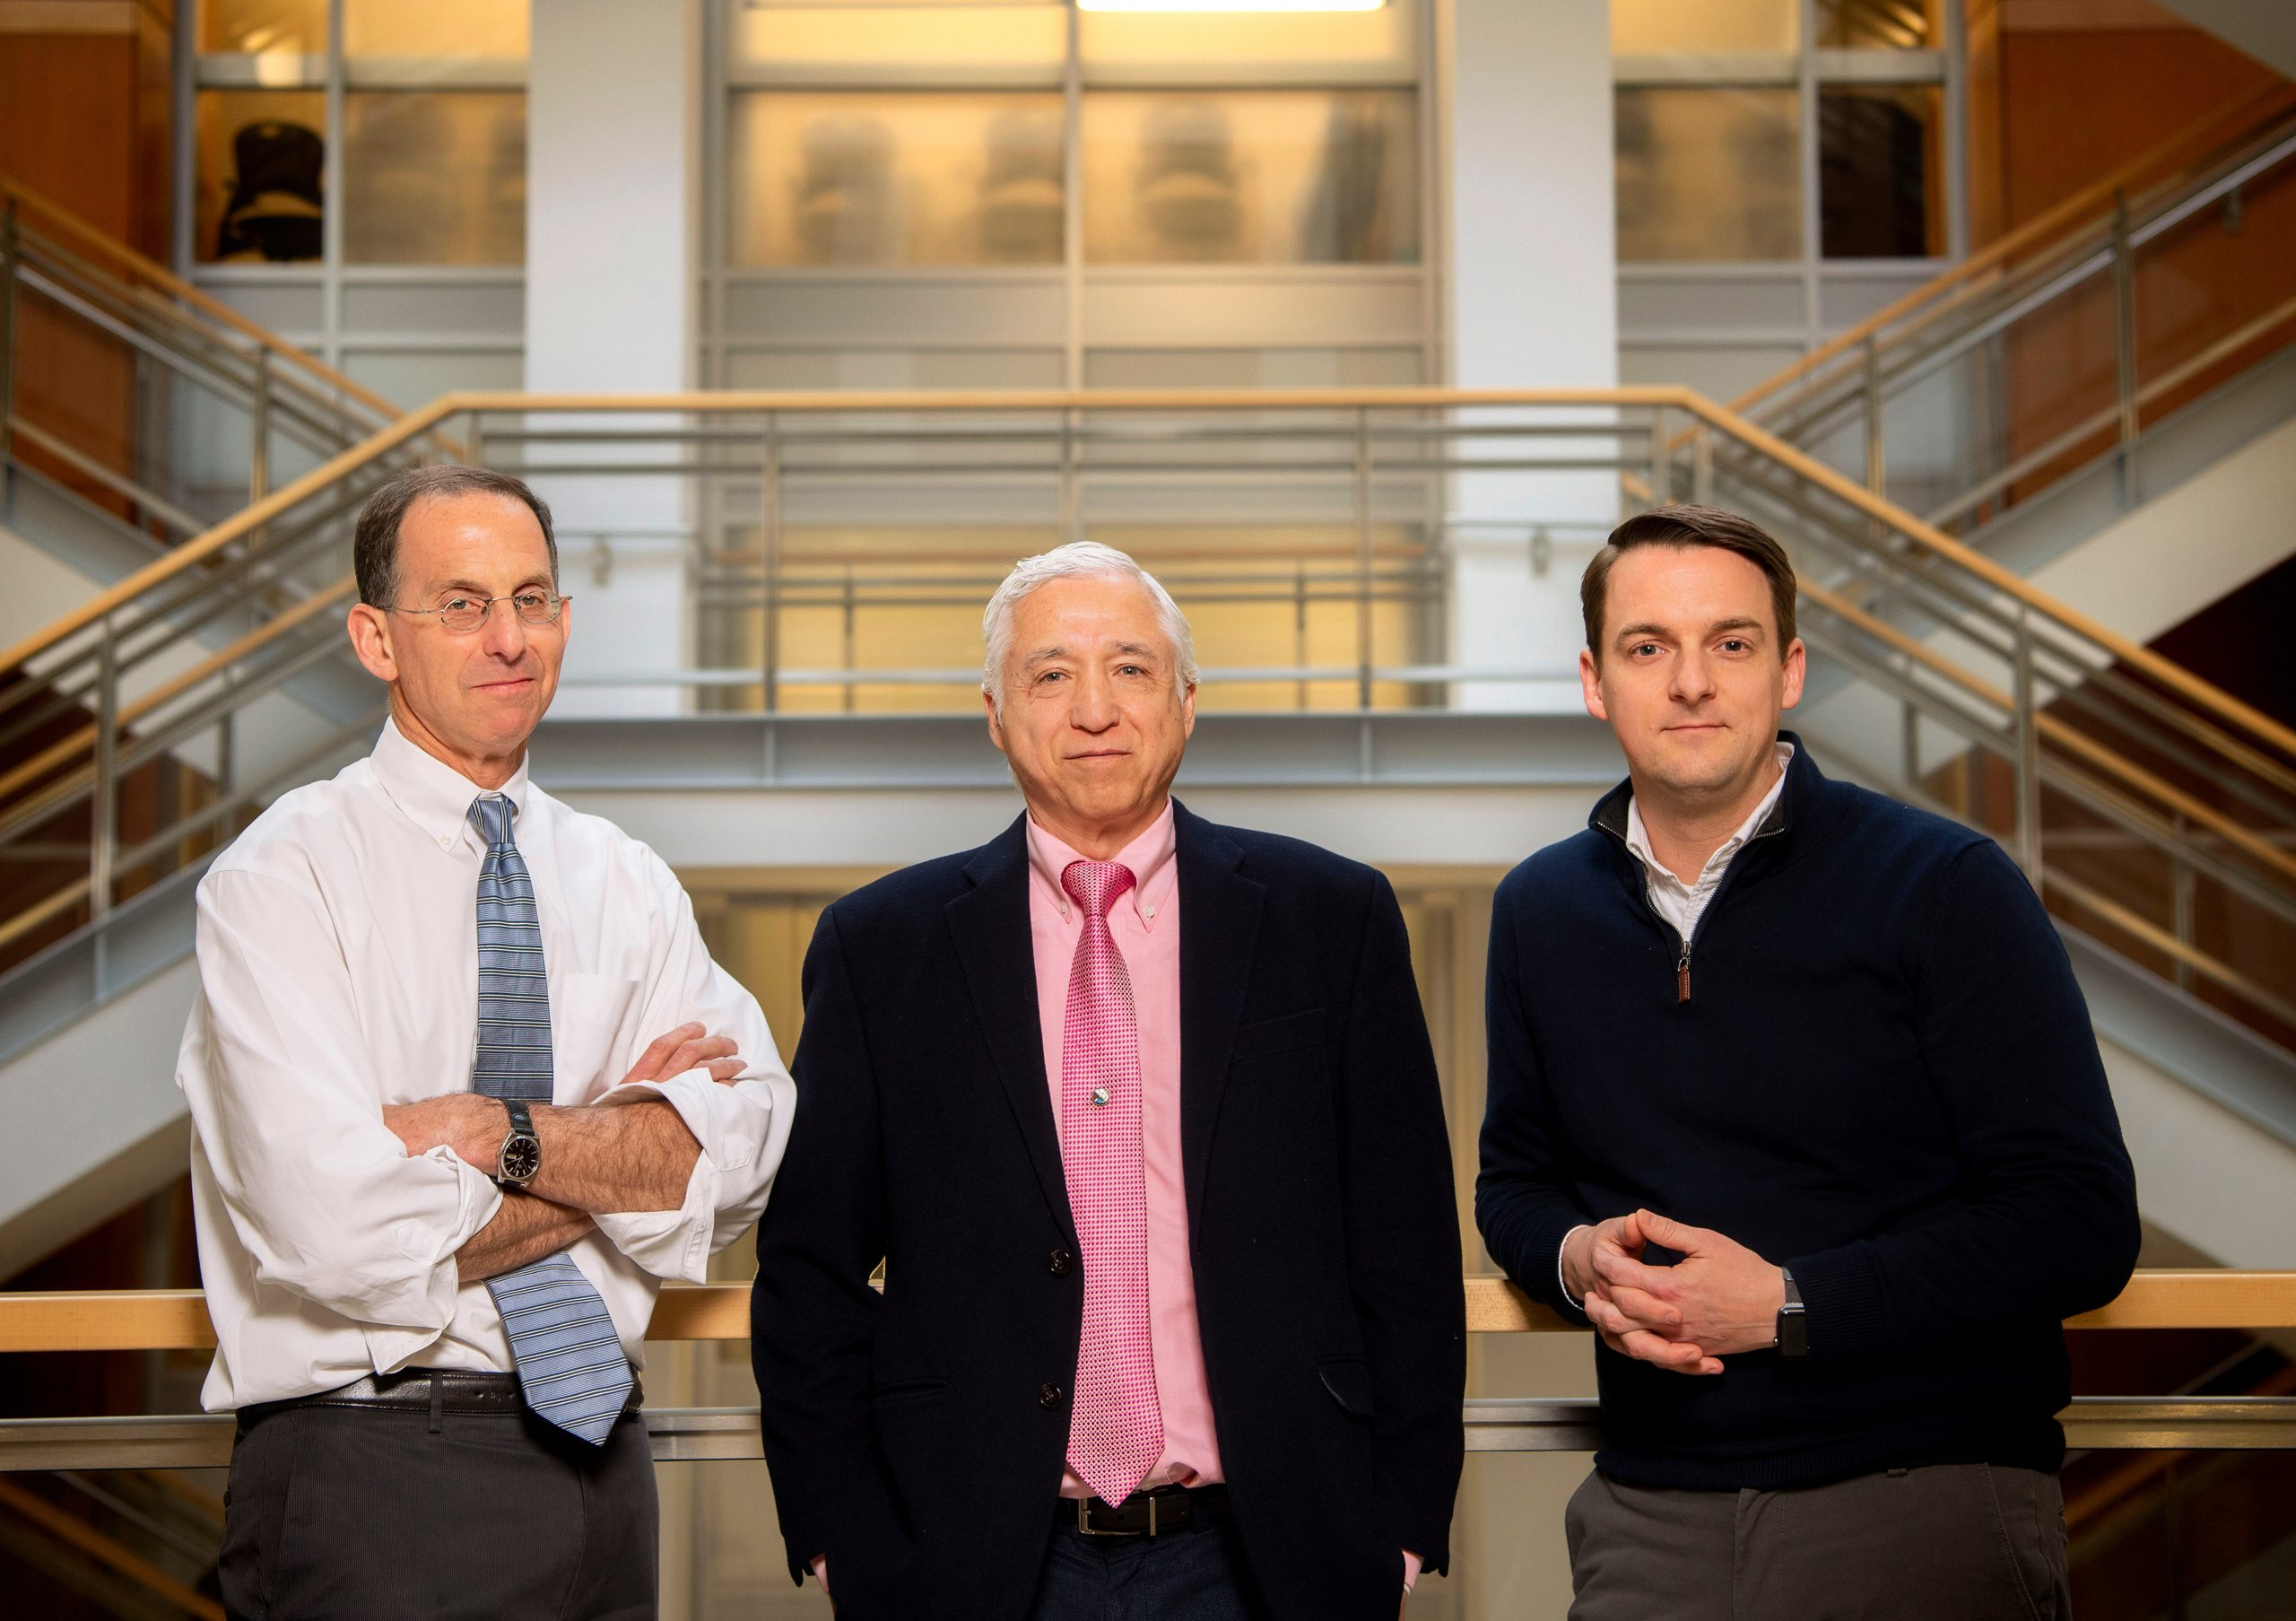 UNC-Chapel Hill HIV researchers David Margolis, MD, and J. Victor Garcia, PhD, along with Rick Dunham from ViiV Healthcare (from left to right), photographed in UNC Genetic Medicine Building